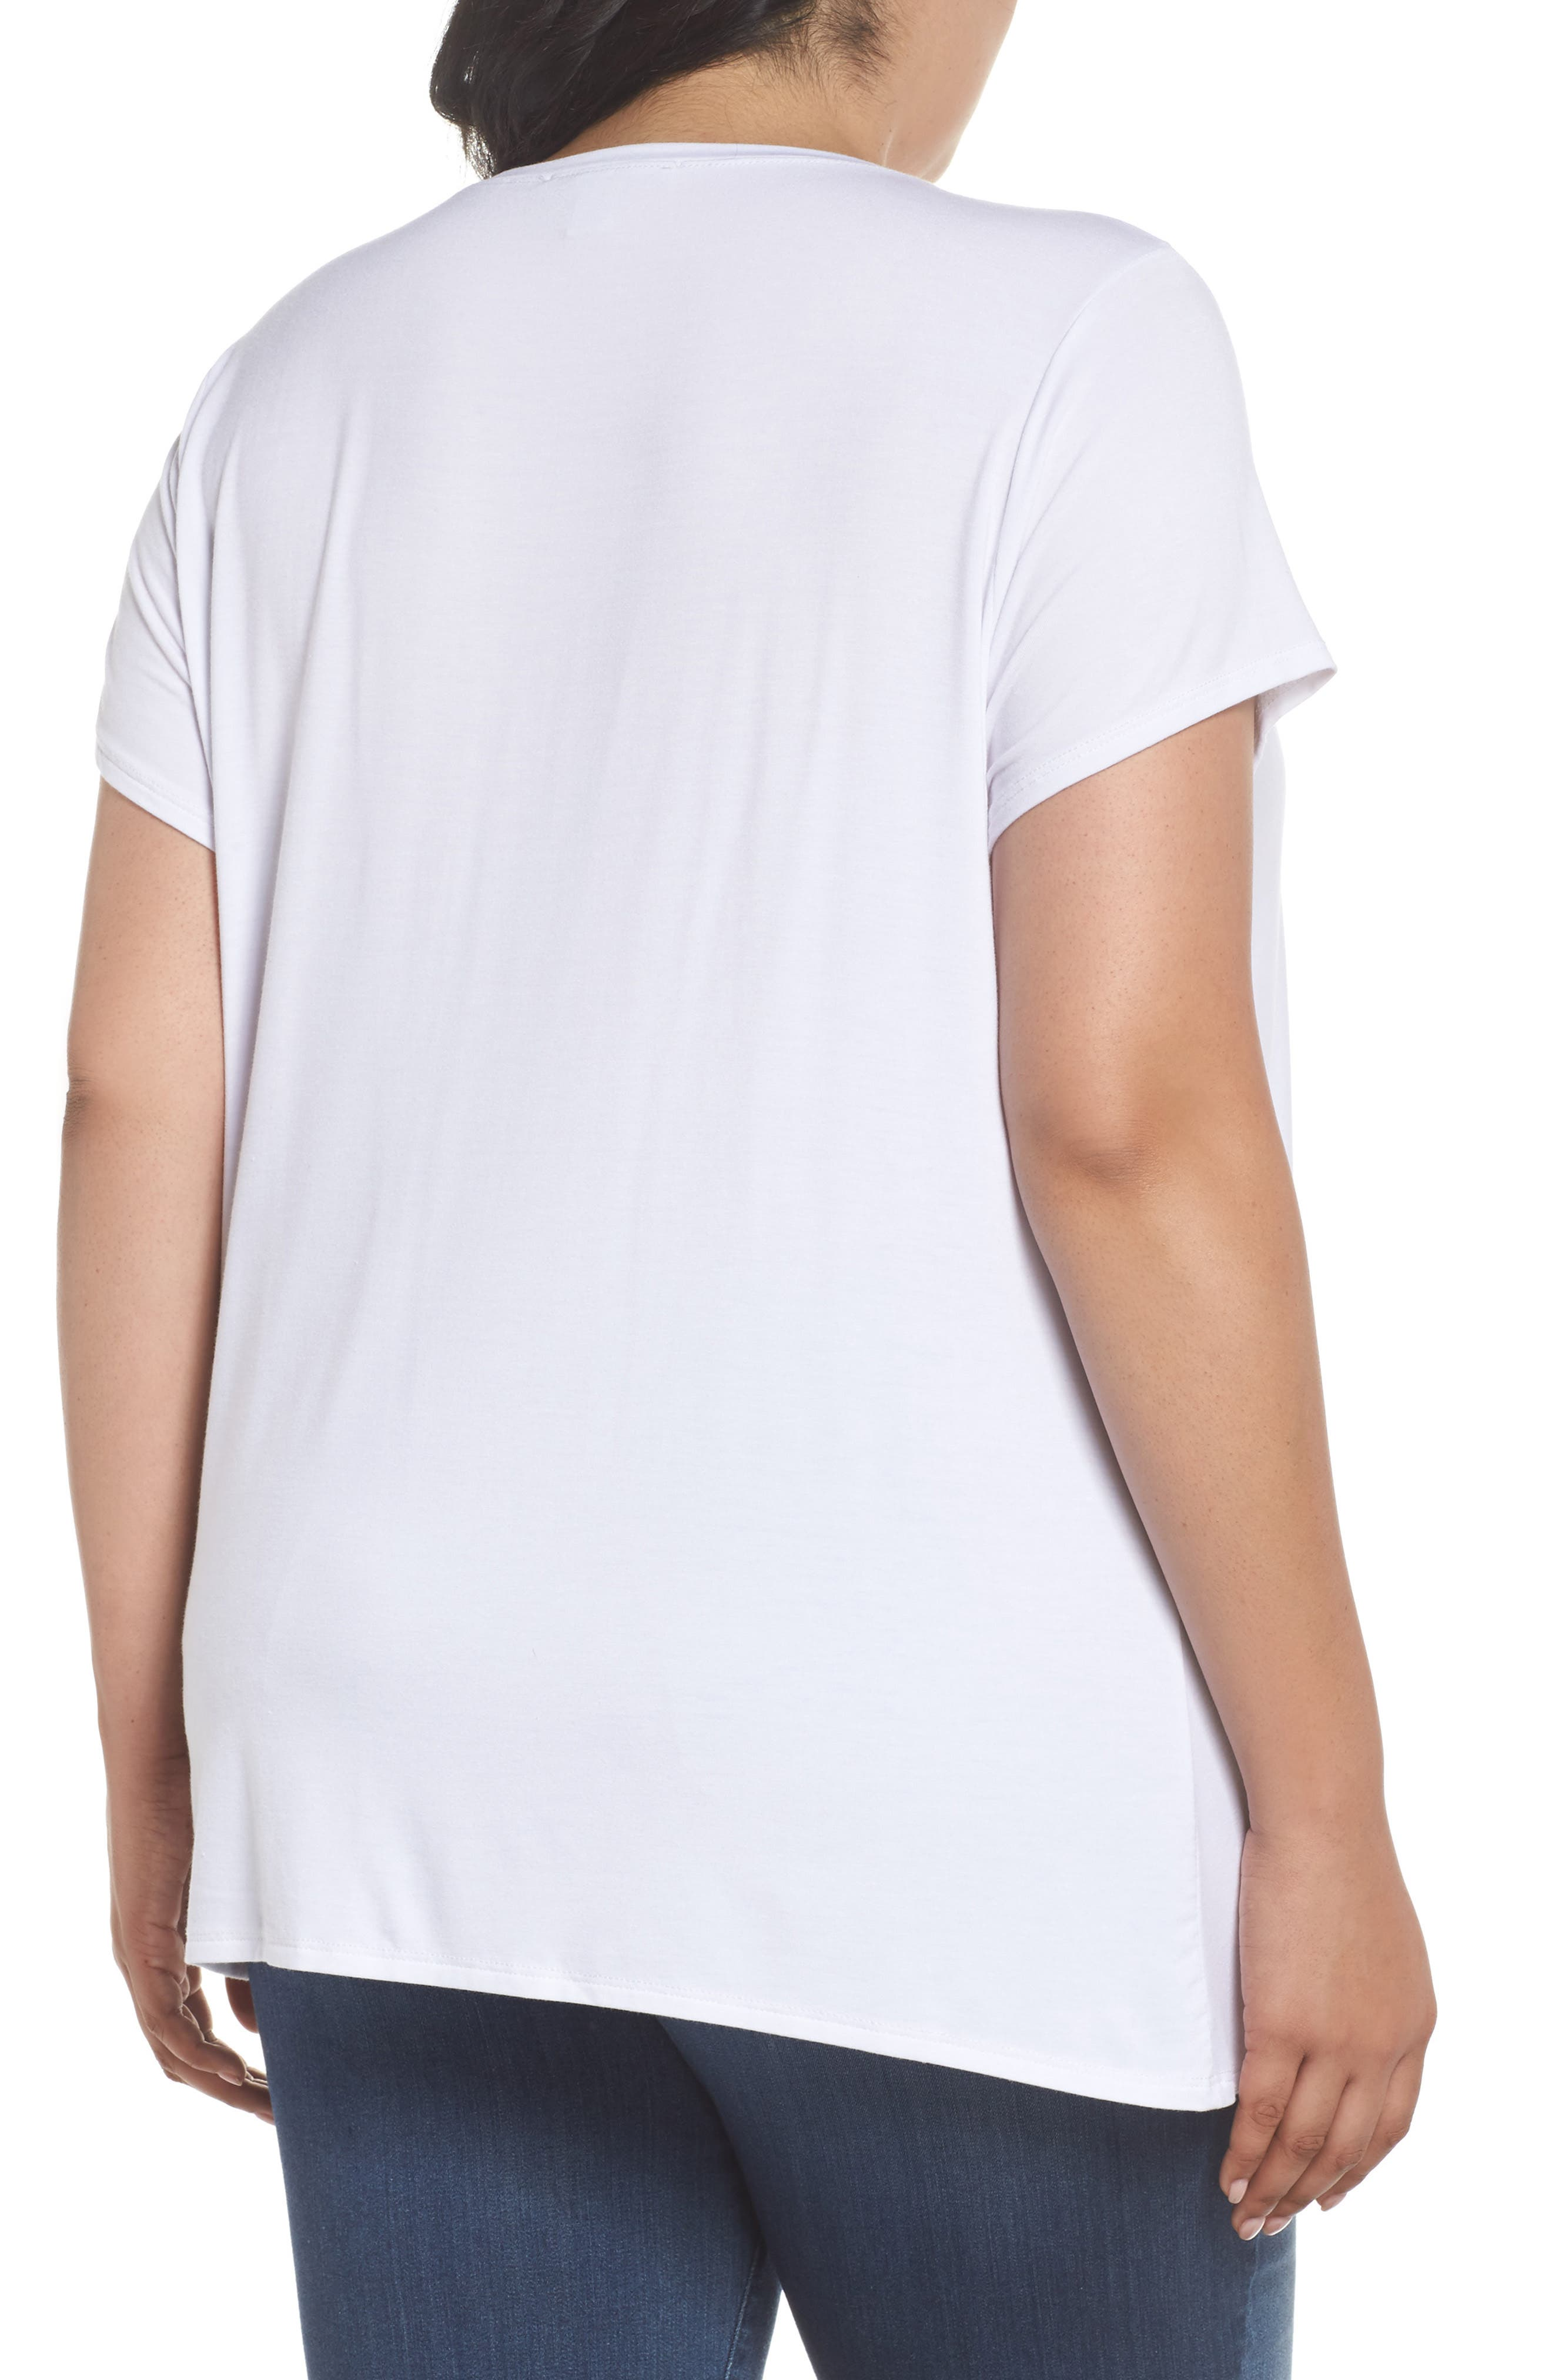 Cinch Tee,                             Alternate thumbnail 2, color,                             White